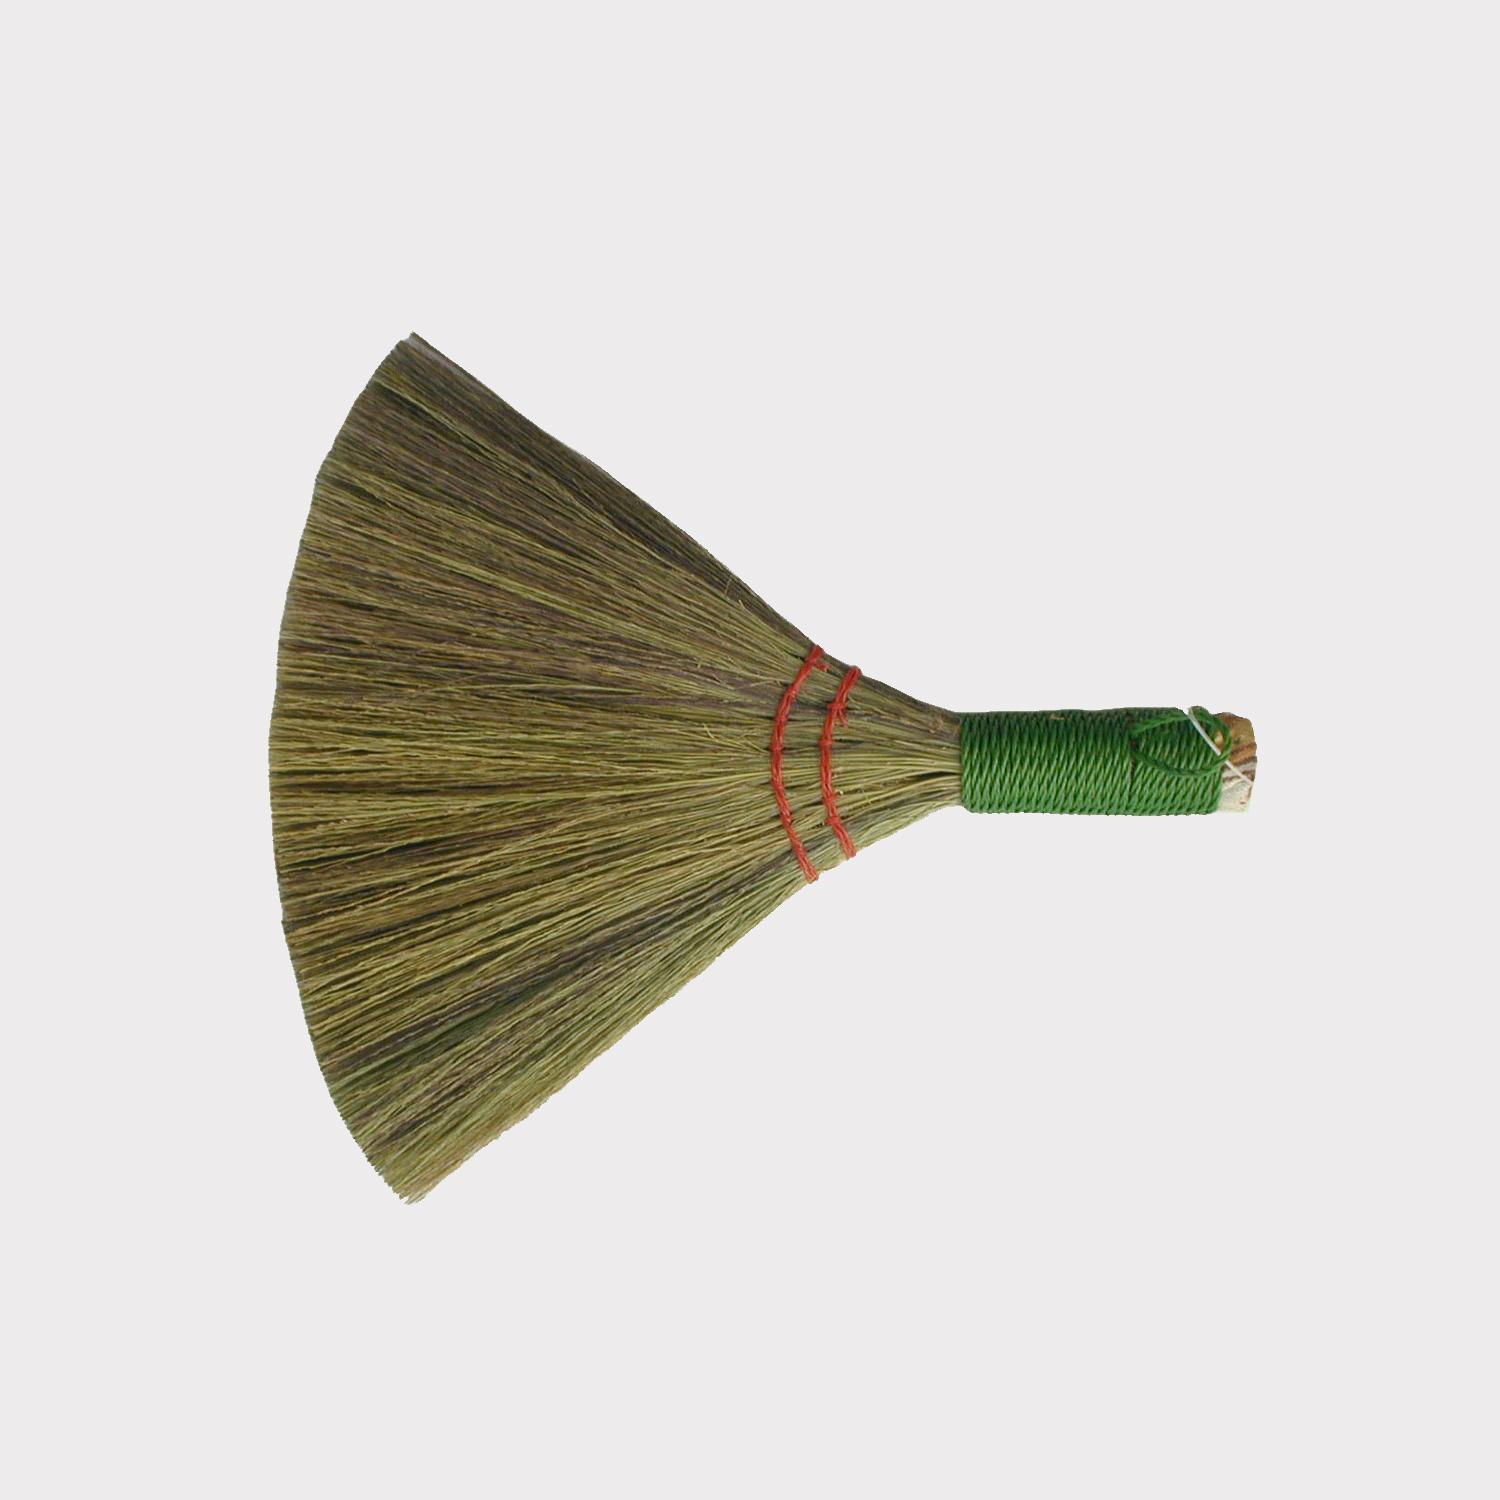 Grass Broom 260013